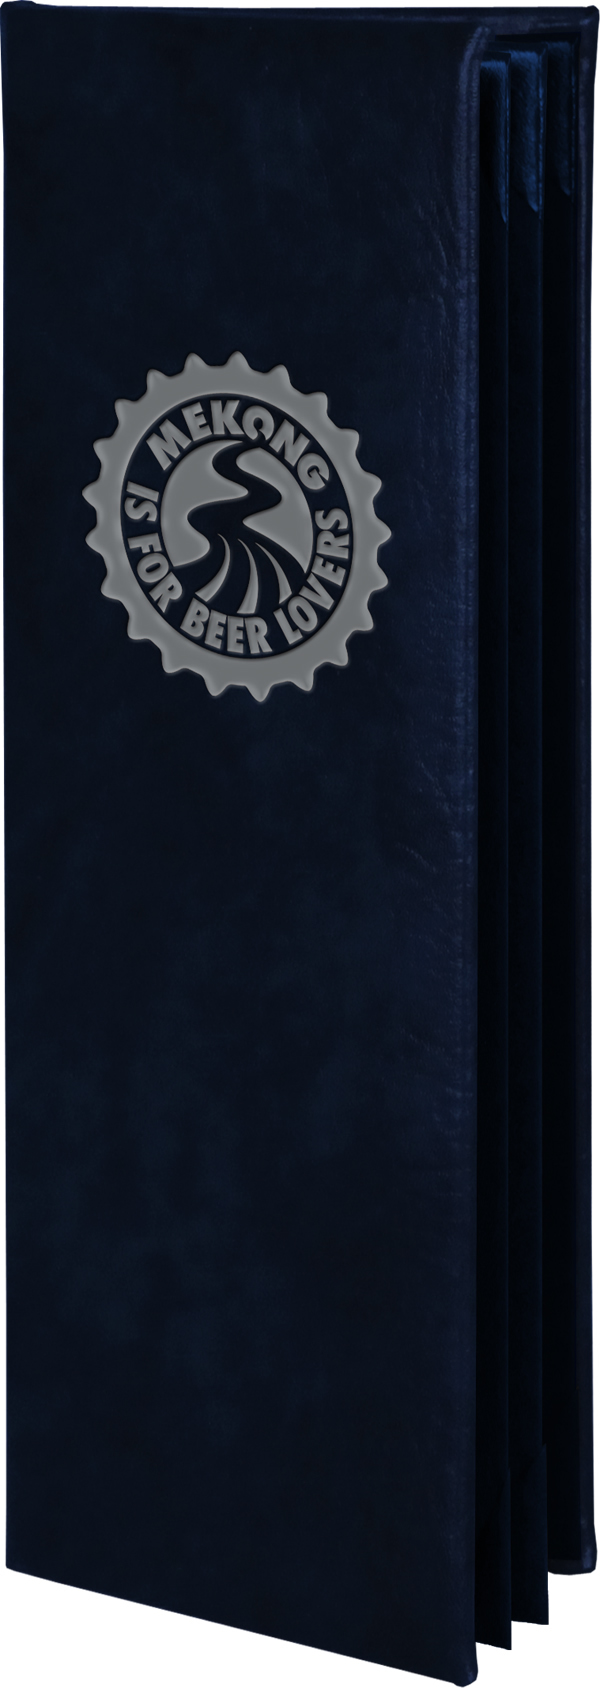 New York Style Harley Menu Covers